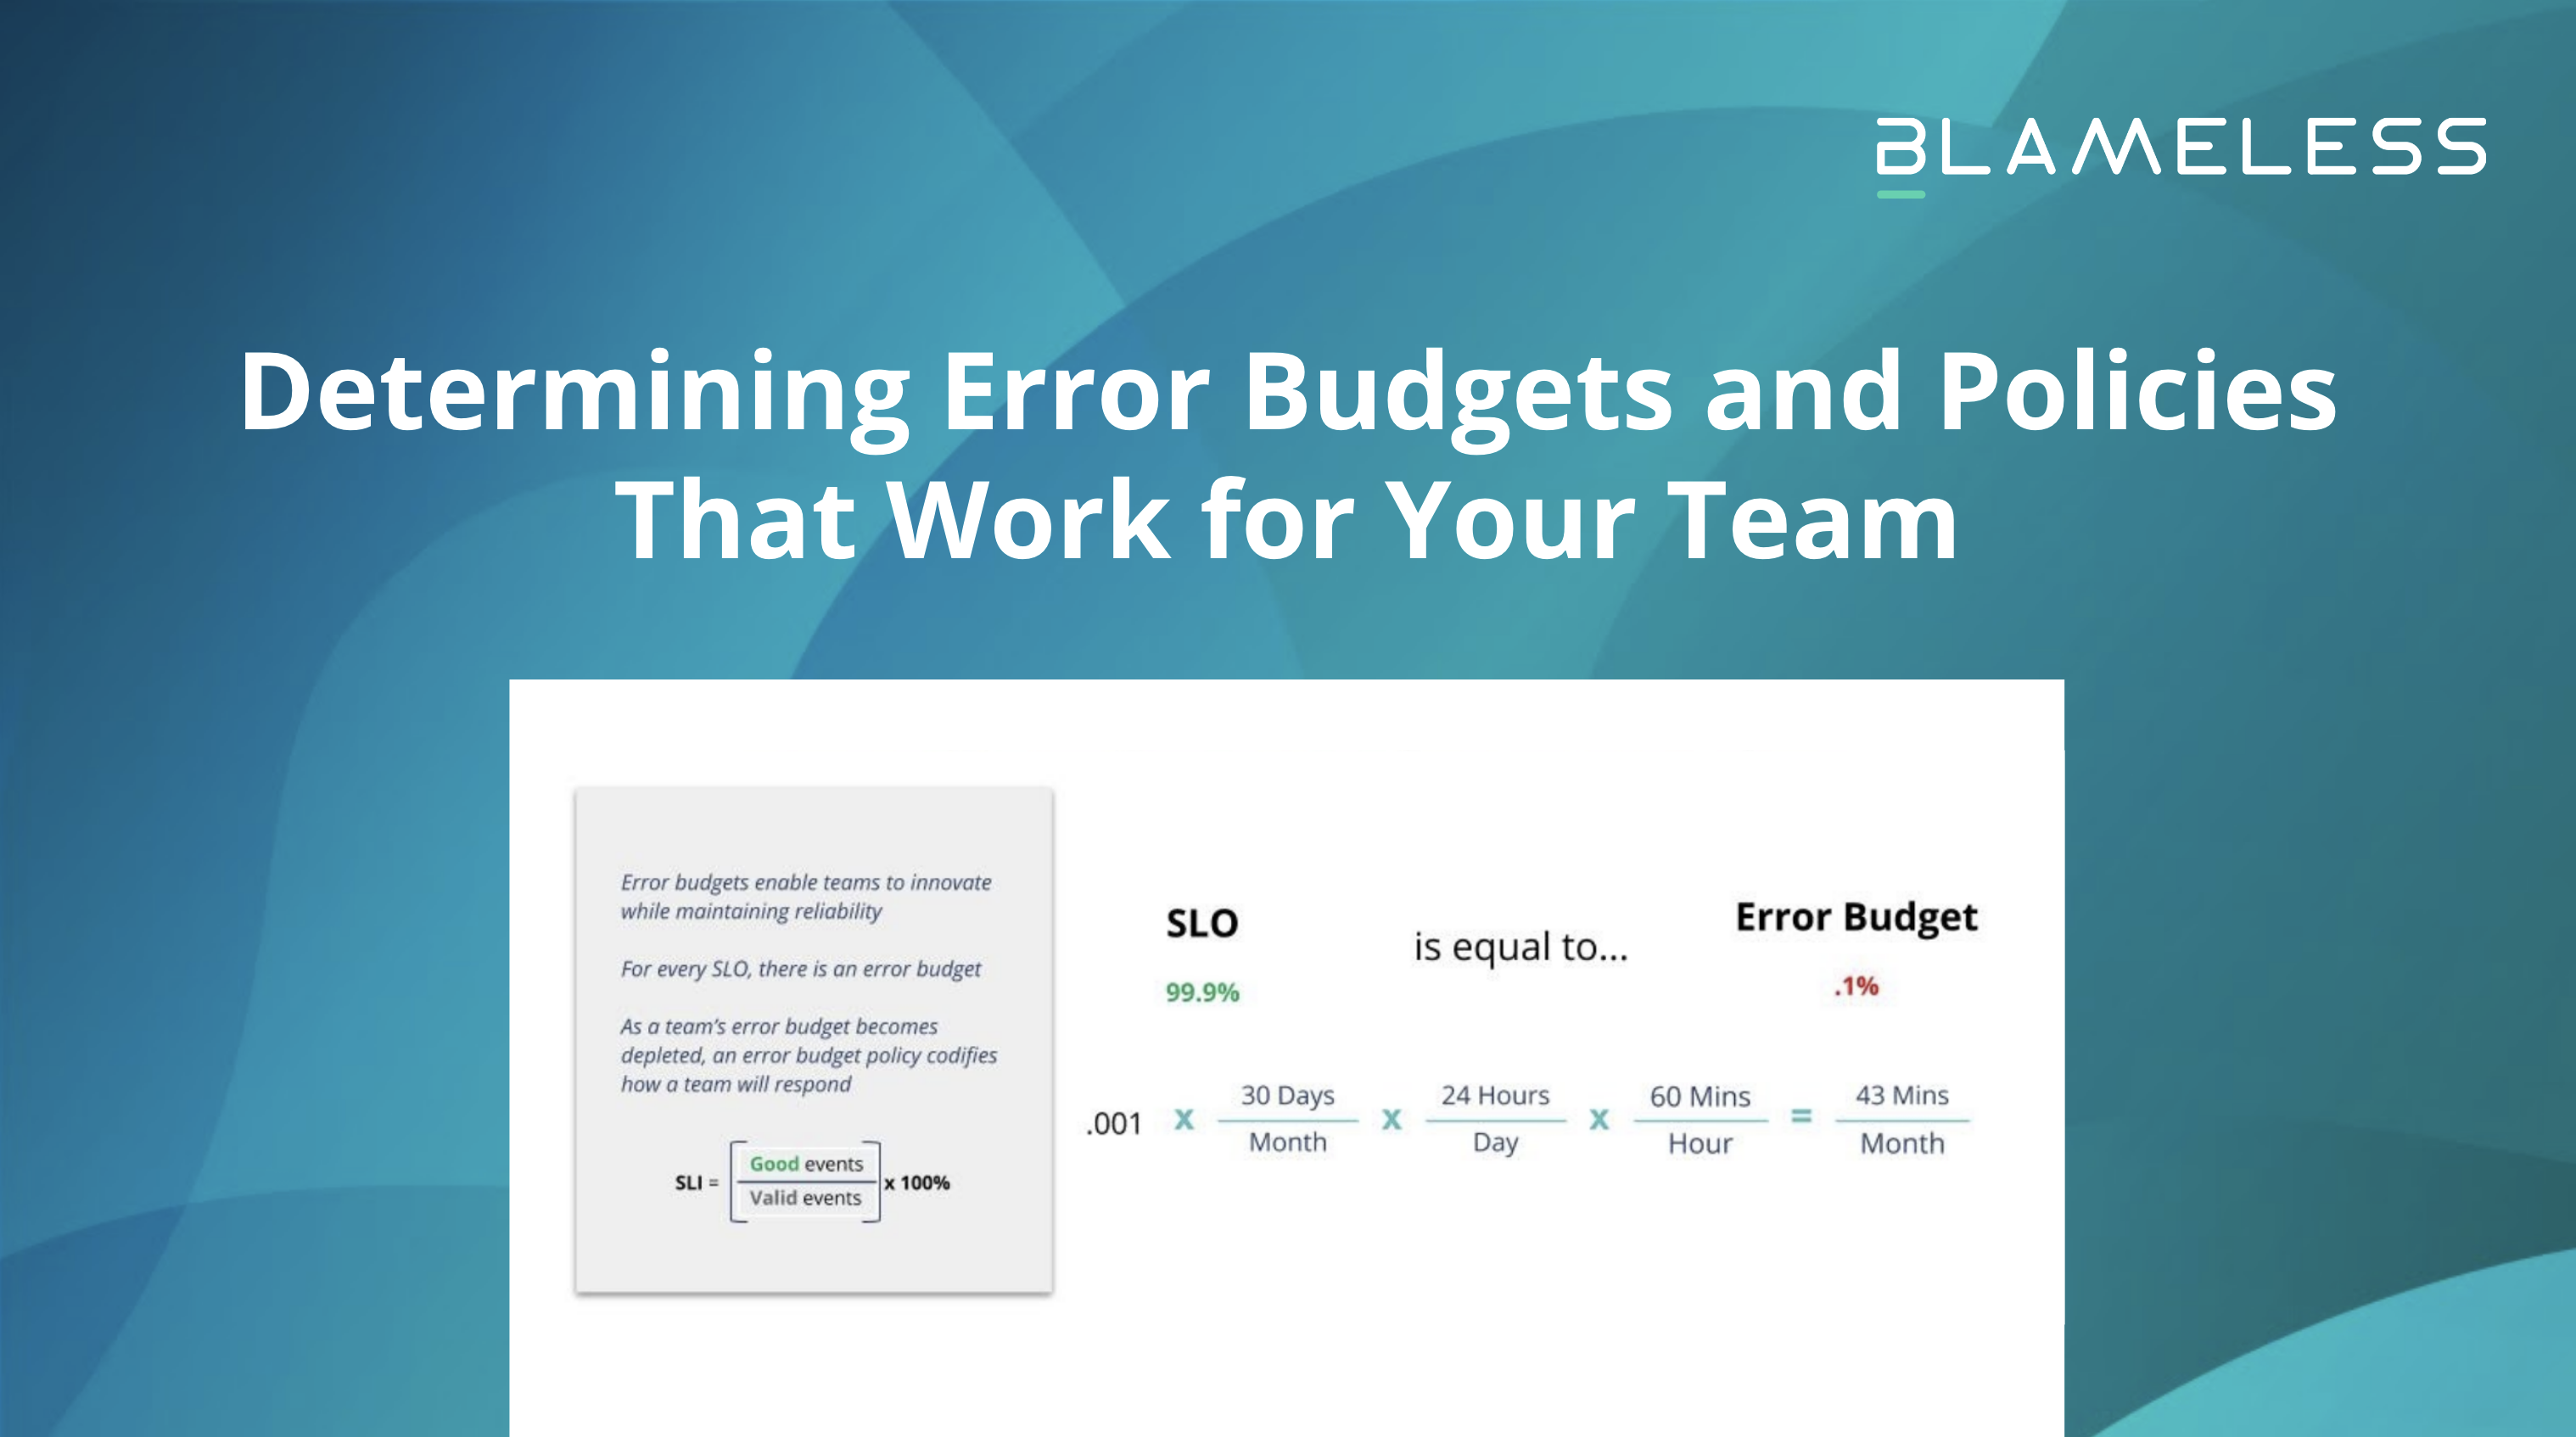 Determining Error Budgets and Policies that Work for Your Team